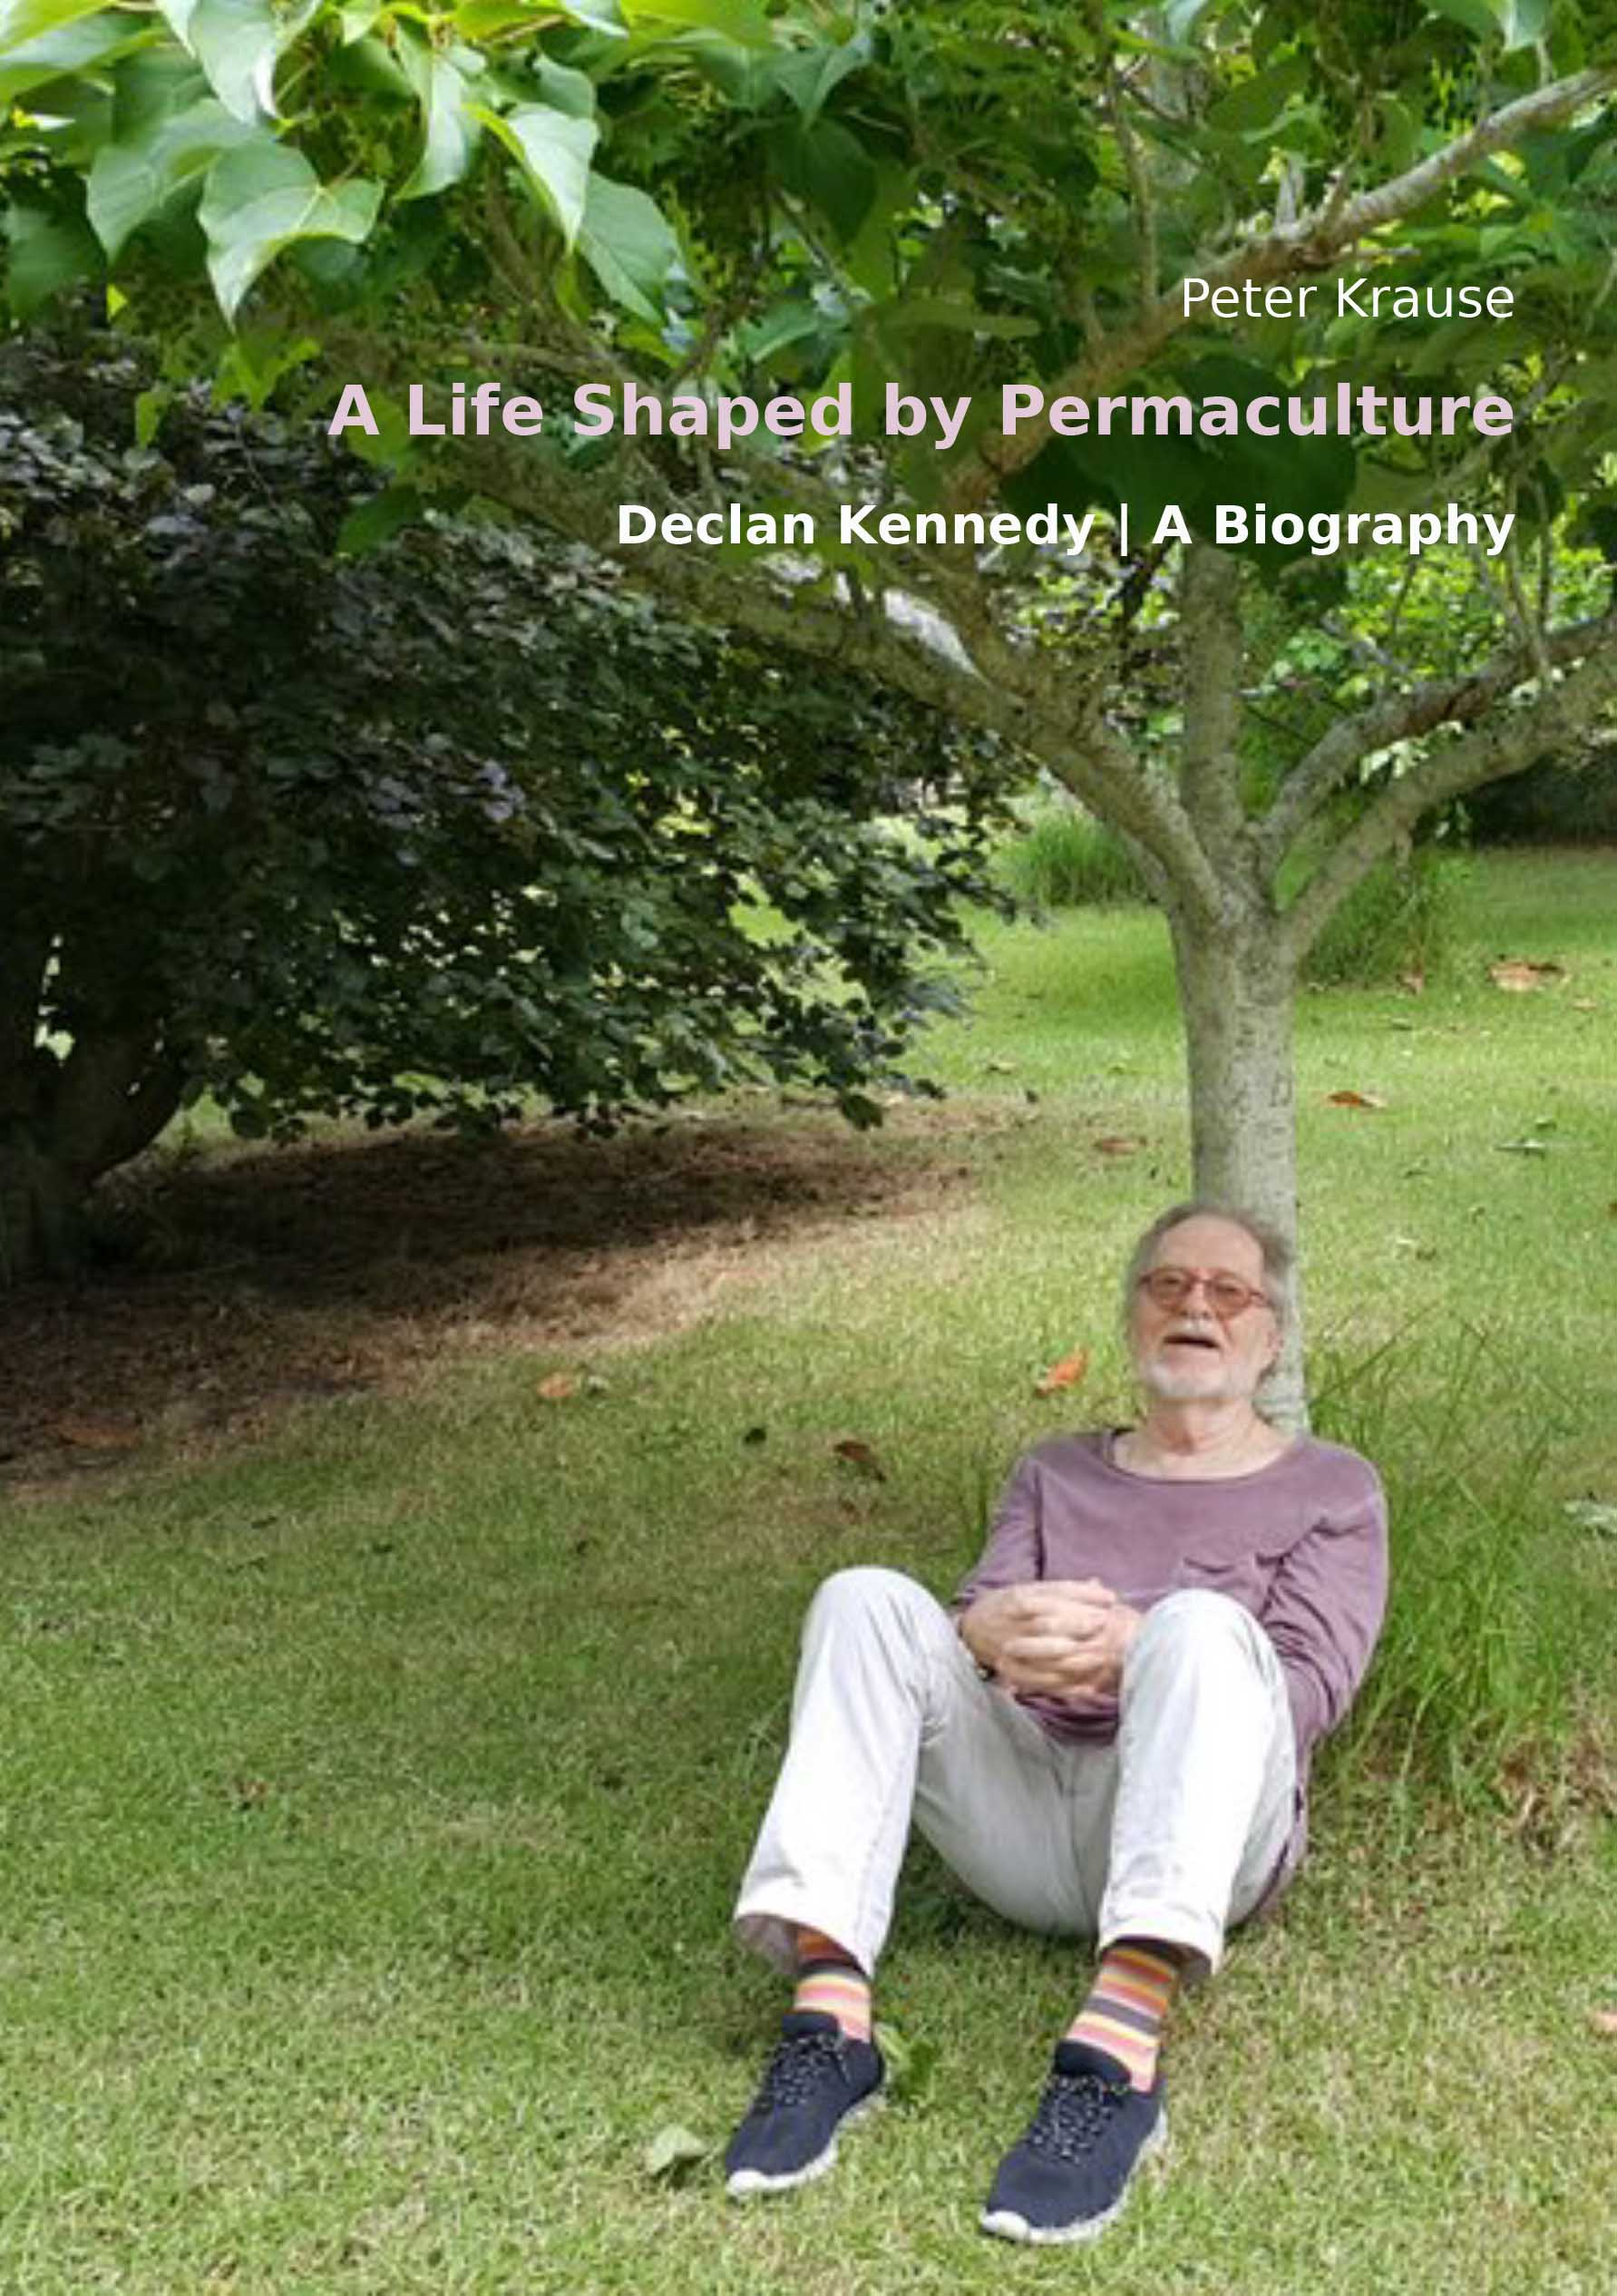 A Life Shaped by Permaculture – A Biography of Declan Kennedy